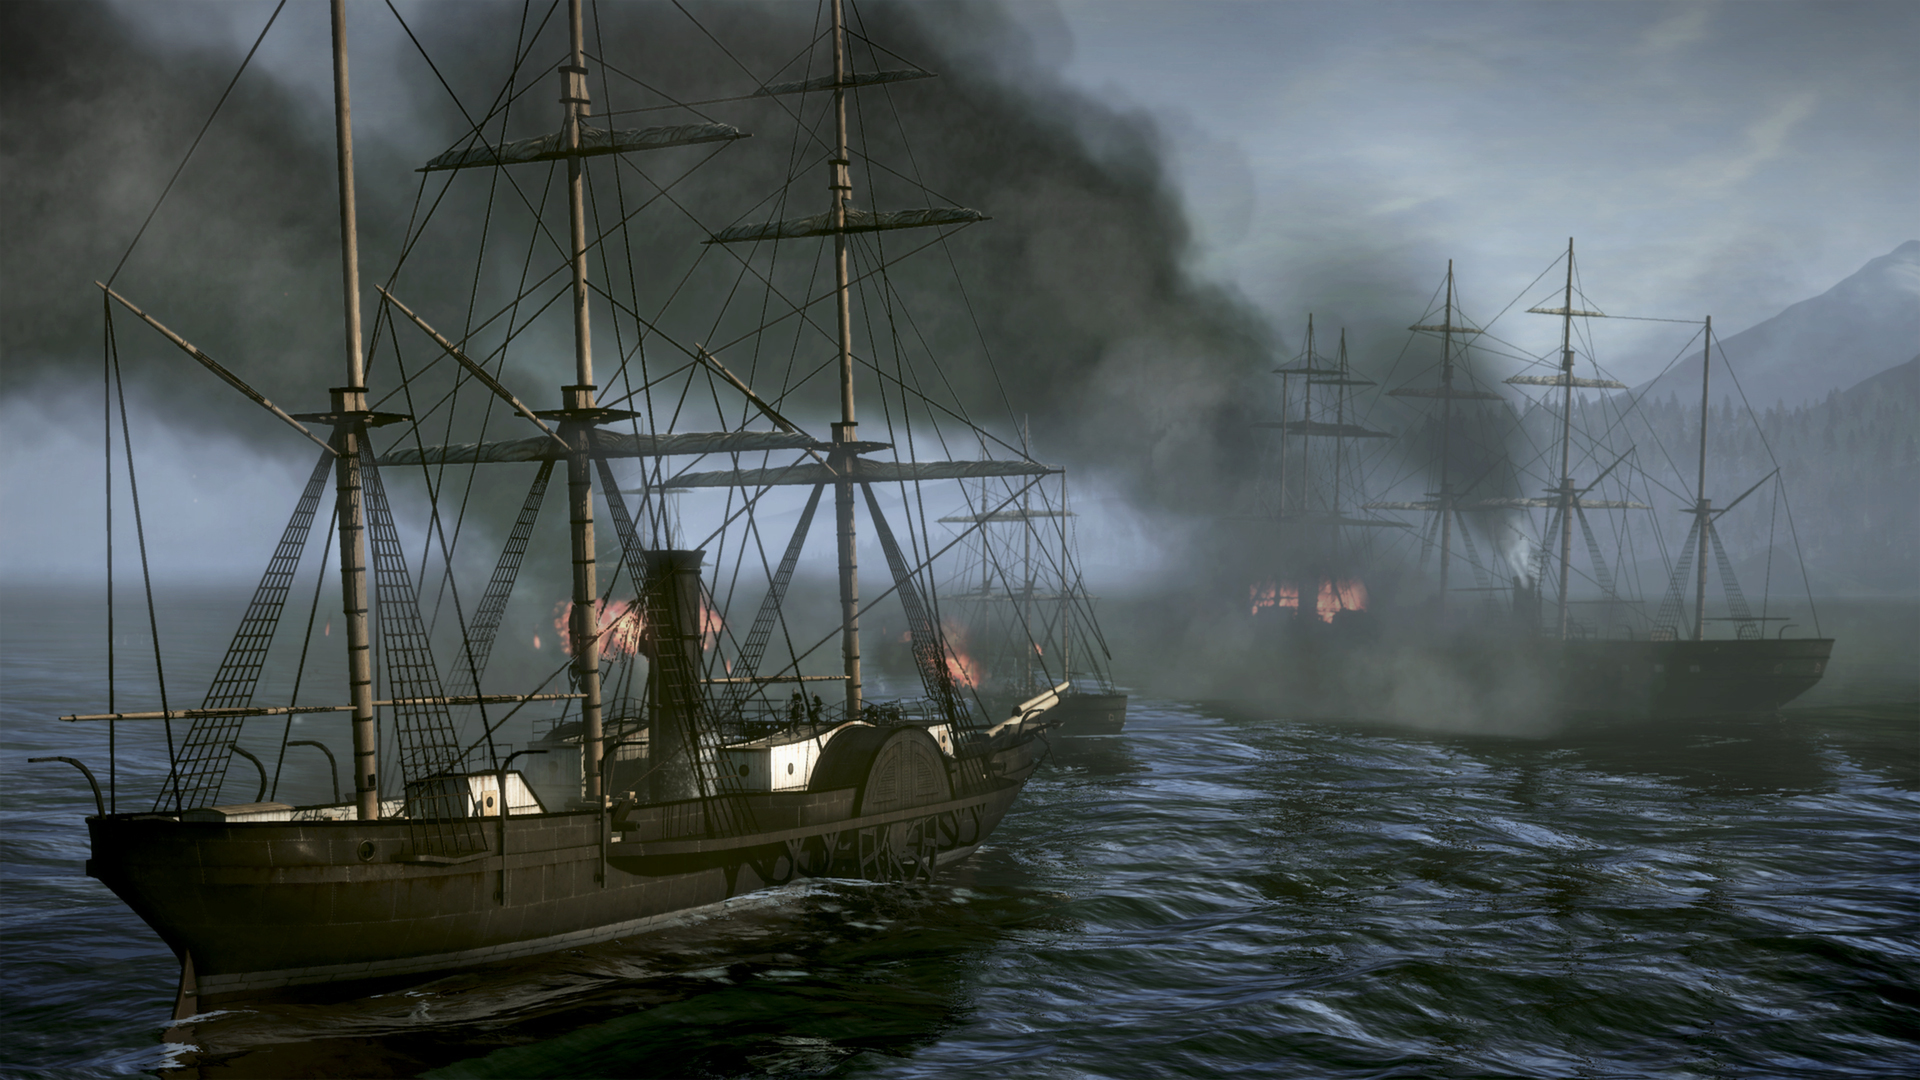 empire total war - How do I win naval battles? - Arqade